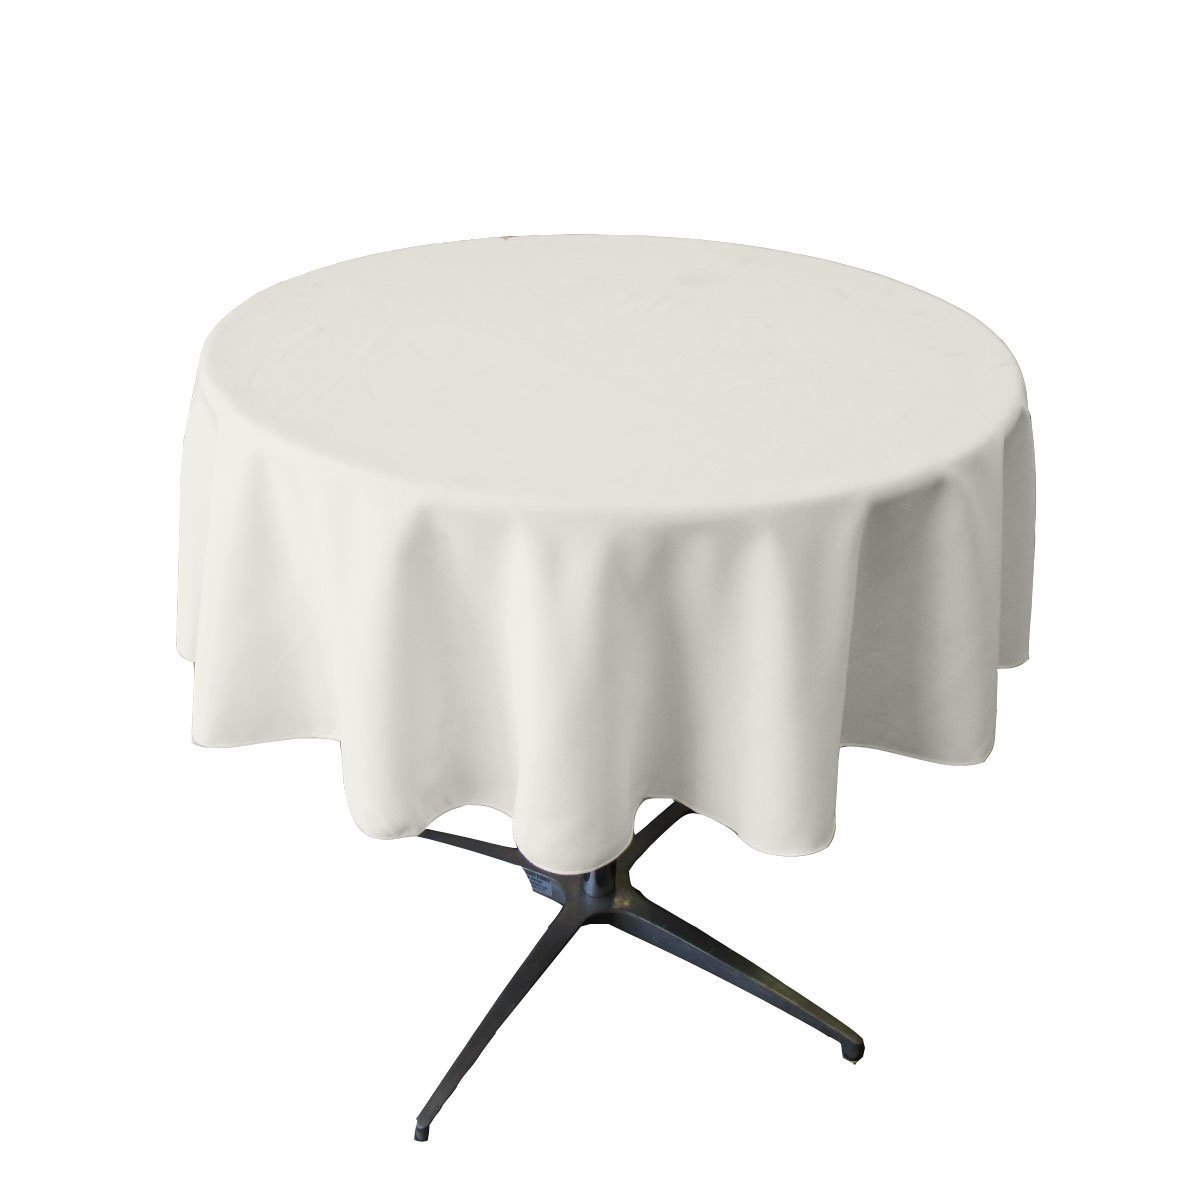 tablecloth small polyester round inch white accent table cloths broward linens home kitchen pottery barn kids designer bedside lamps west elm top patio serving decorative pieces